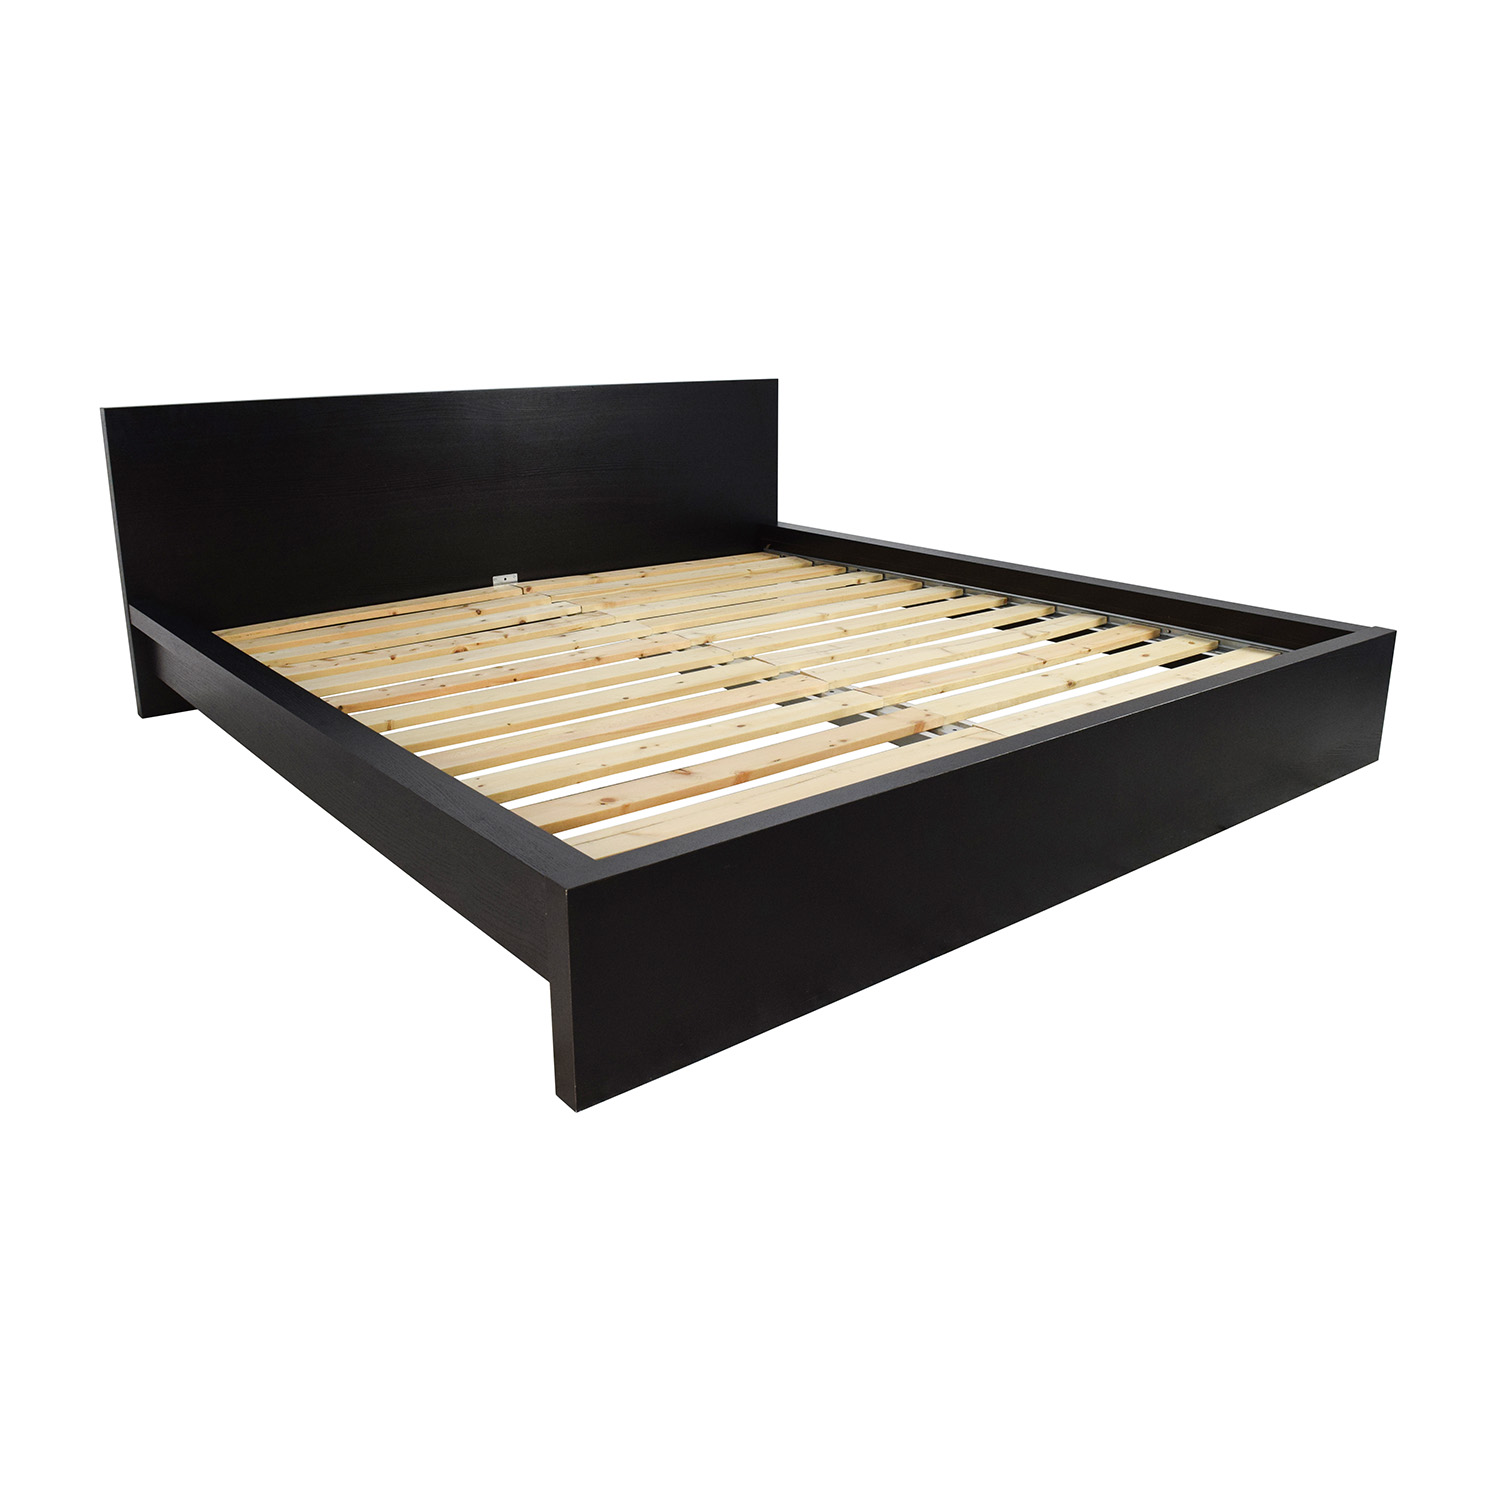 81 off ikea ikea malm king size bed beds for King size bunk bed